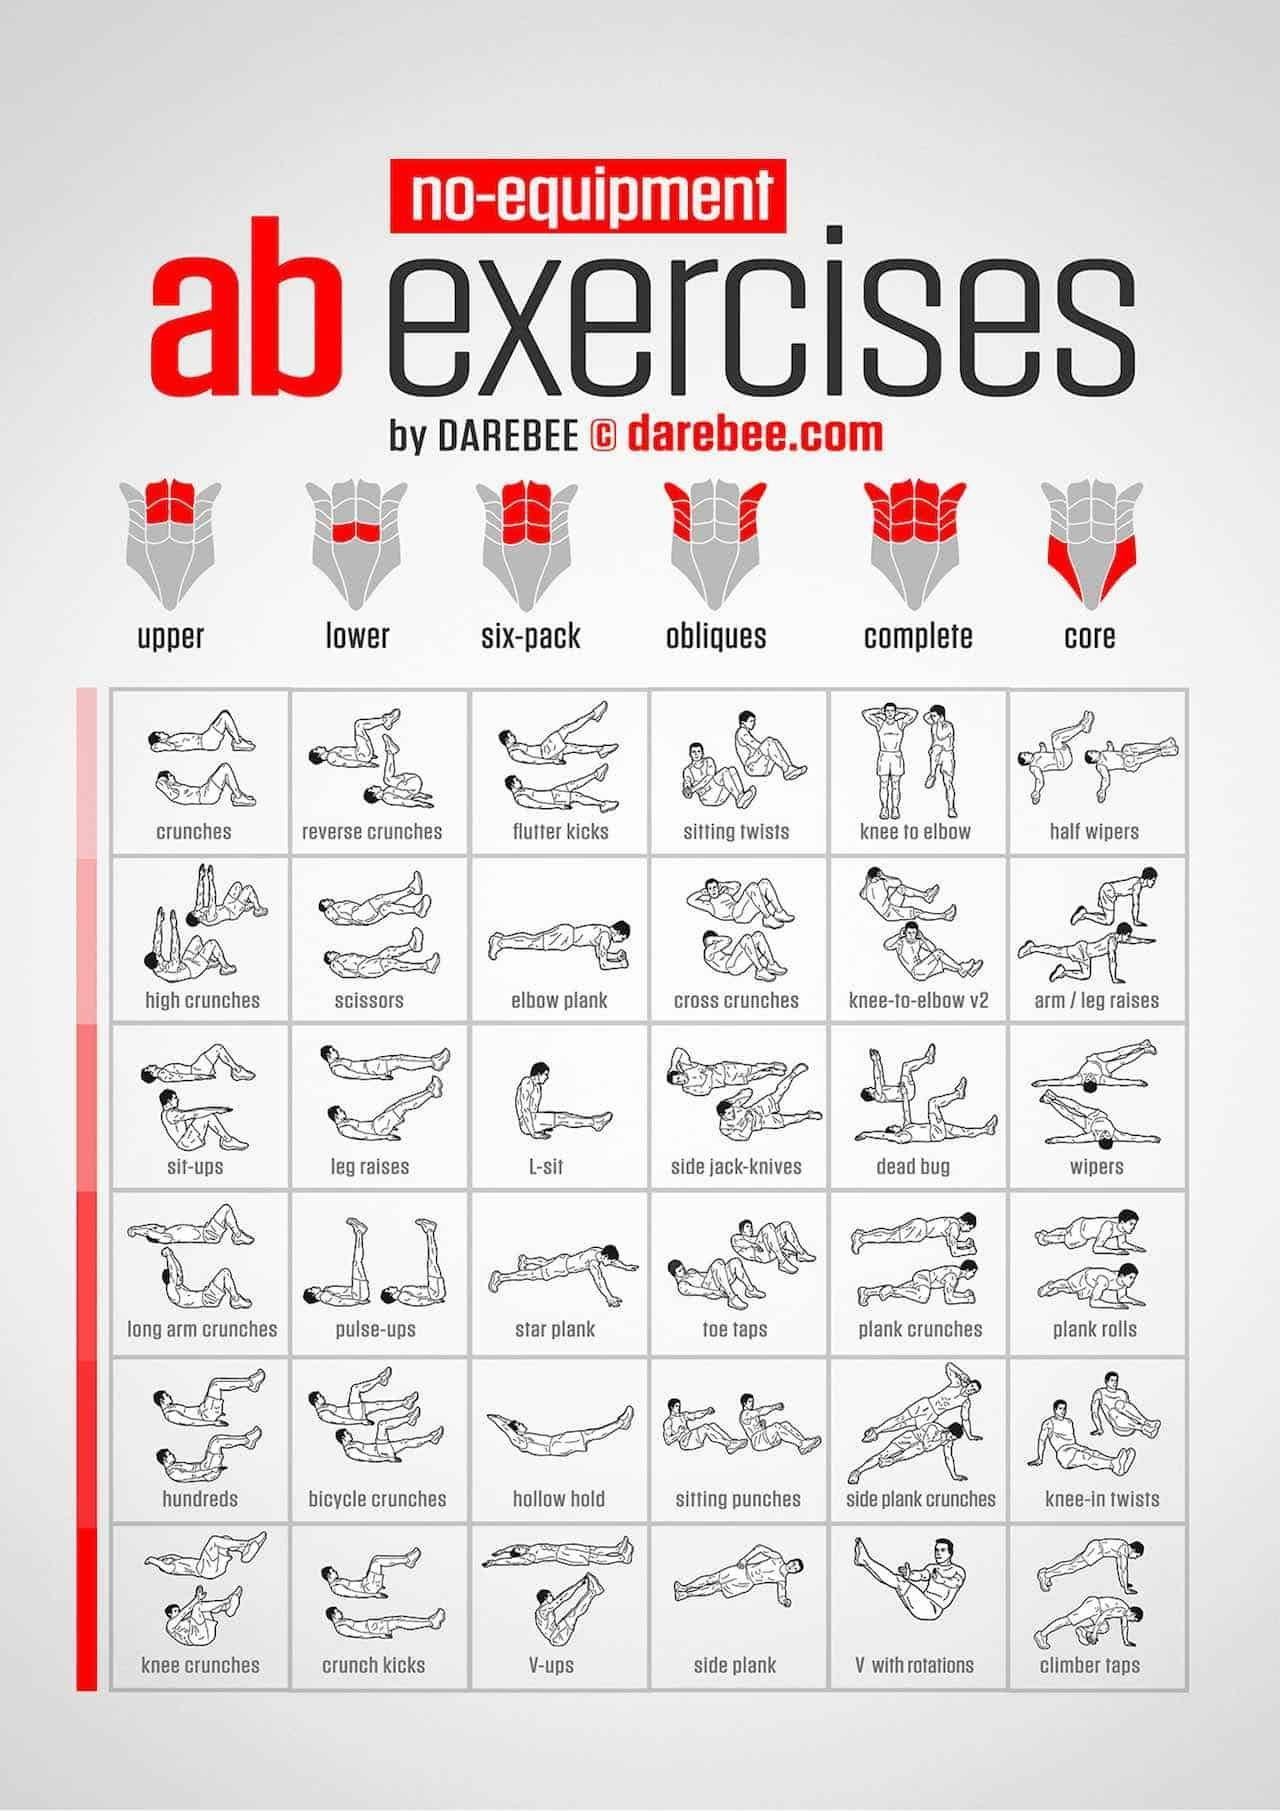 Do you want to get rid of belly fat and get flat stomach? Then here are the best stomach exercises f...